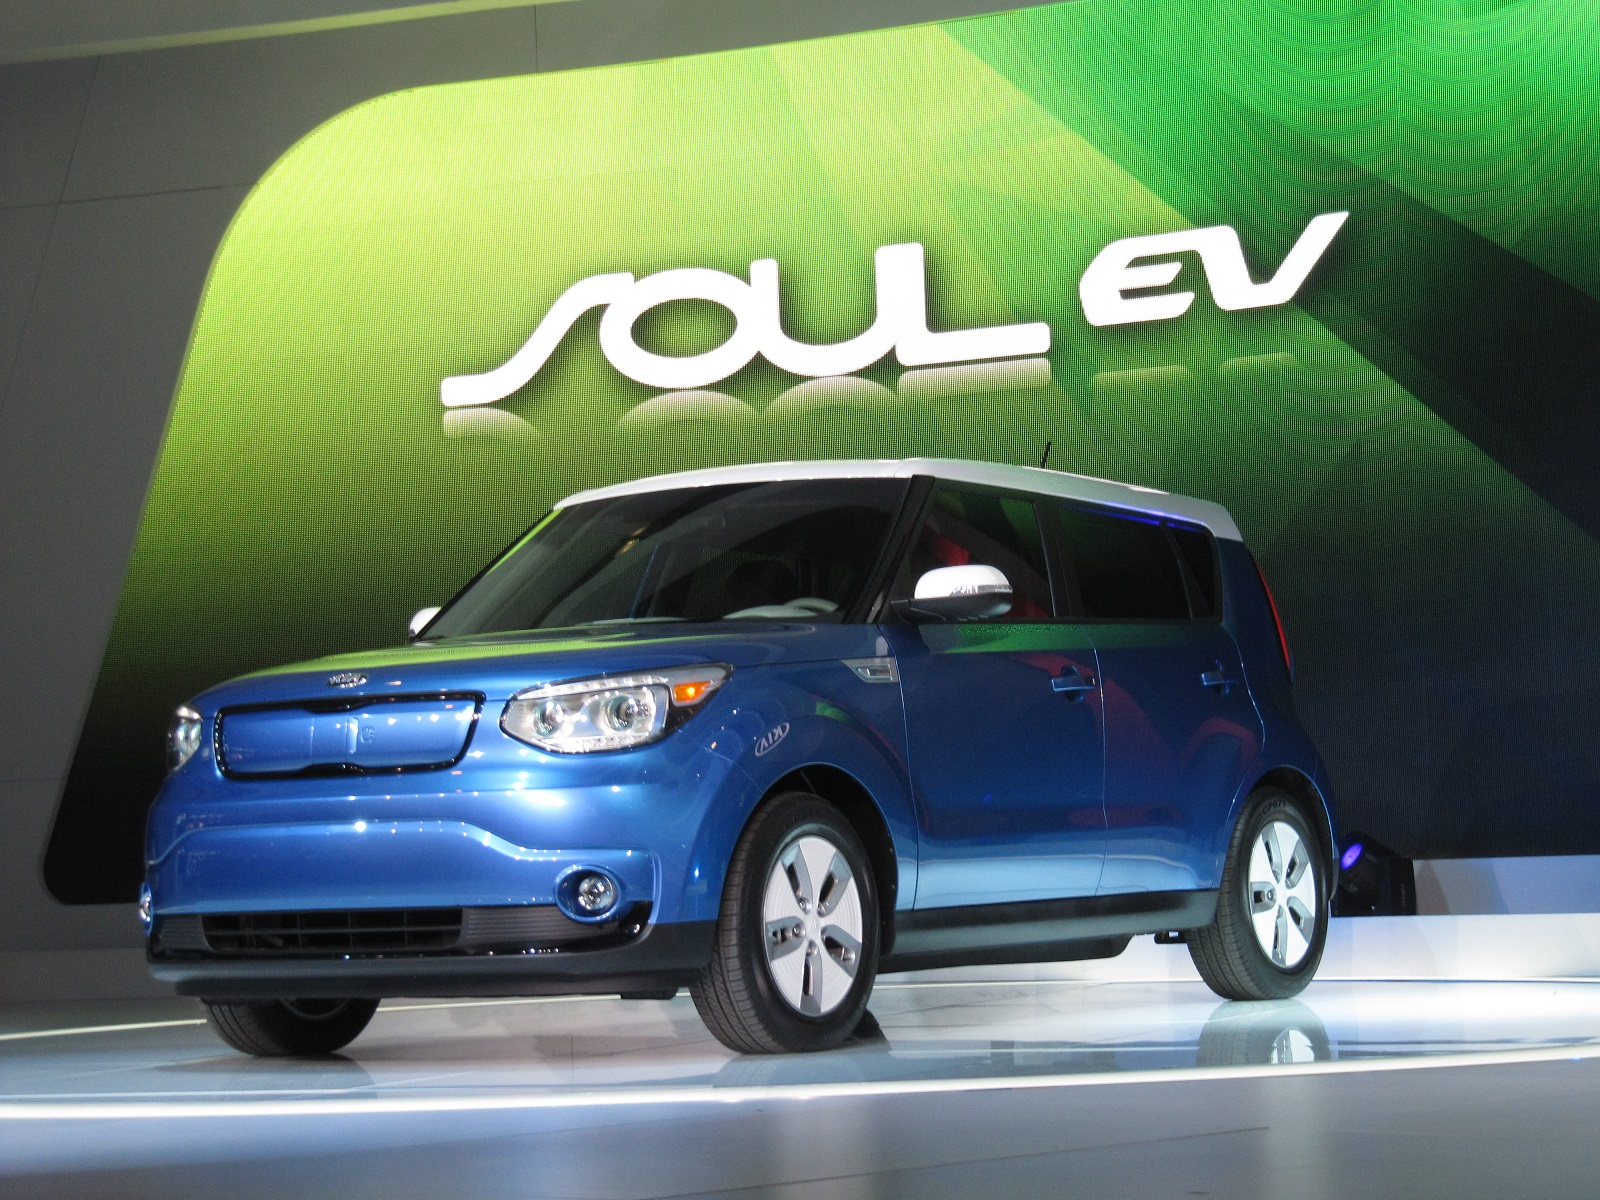 2015 Kia Soul EV: Estimated 93 Miles Of Range, Priced Under $35,000 Or ...